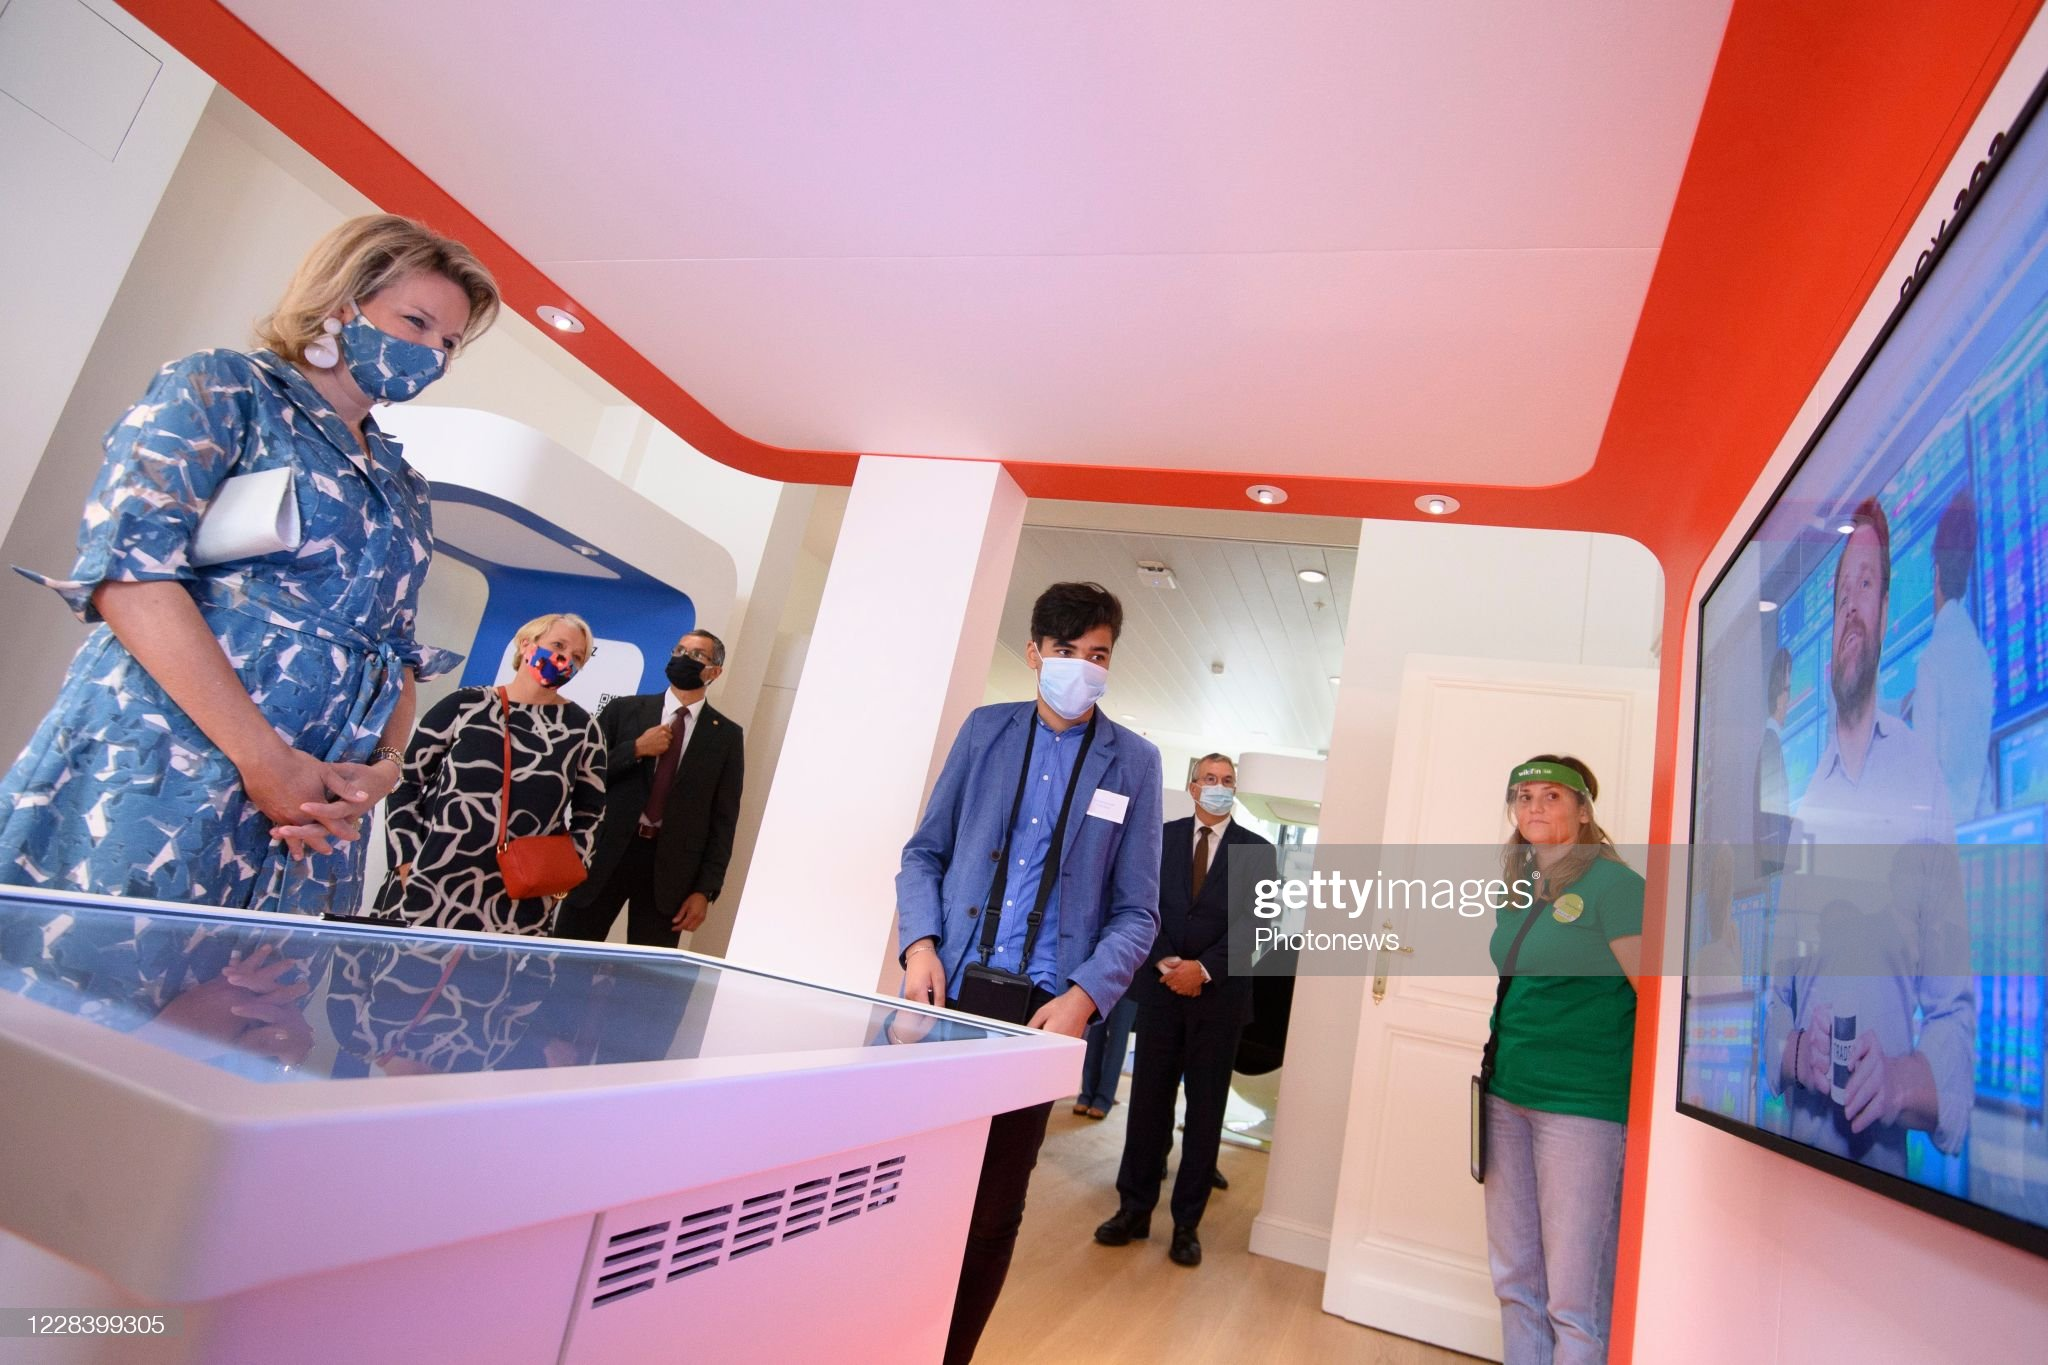 opening-of-the-new-wikifin-lab-in-the-presence-of-the-queen-mathilde-picture-id1228399305